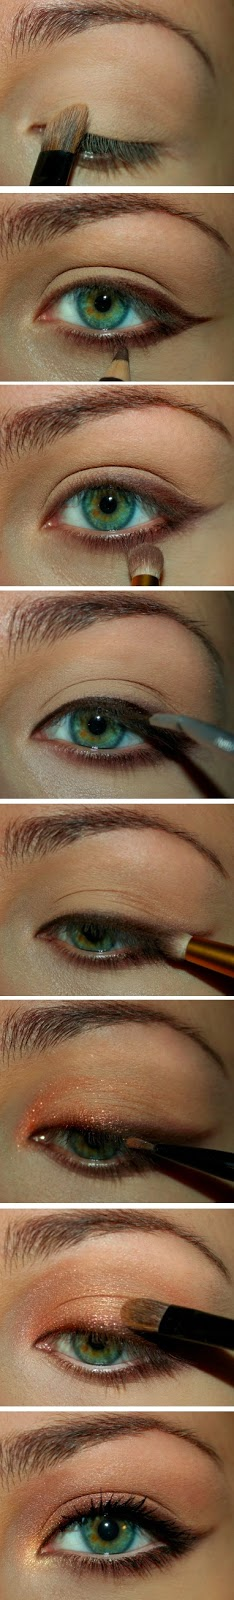 motivational trends: brown and gold cat eye makeup tuts